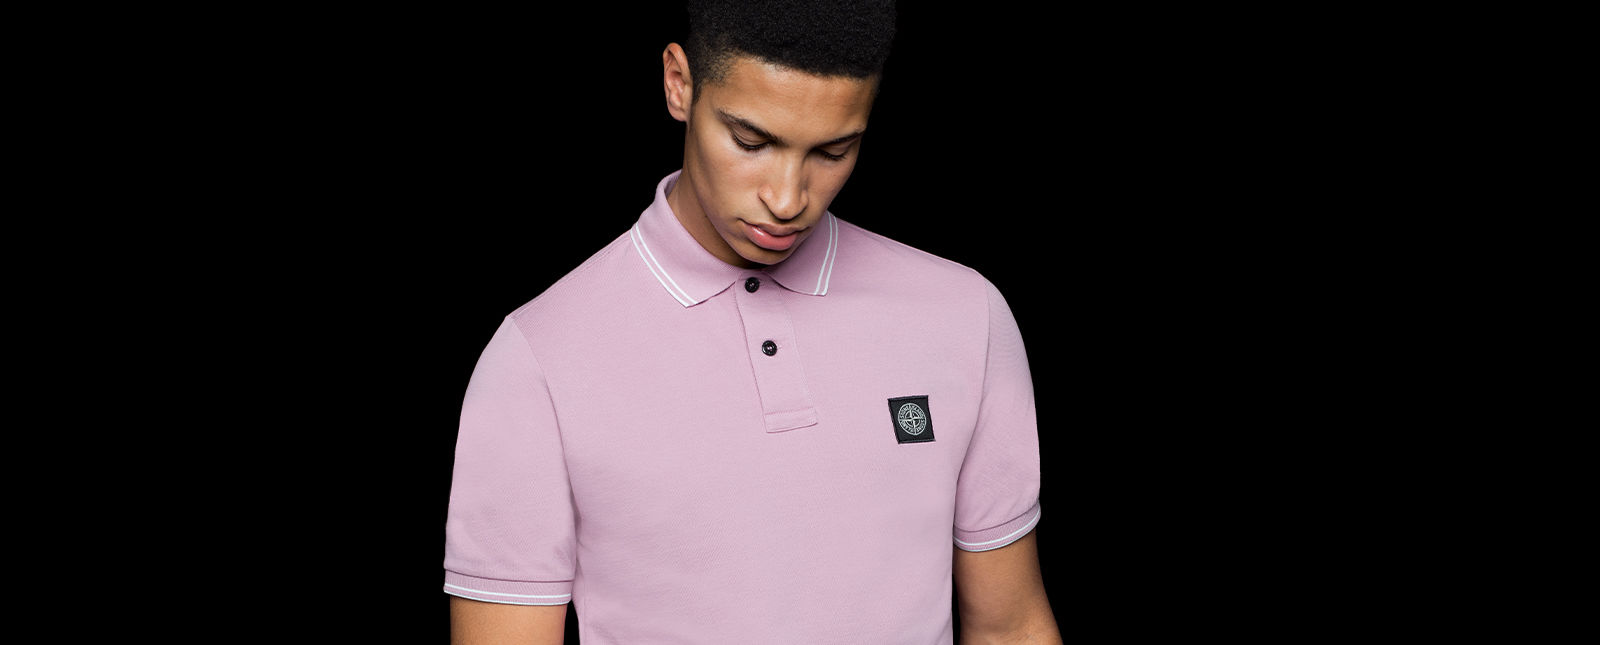 Model wearing a light pink short sleeved polo shirt with white stripes on the cuffs and collar, black buttons, and the Stone Island patch on the chest.